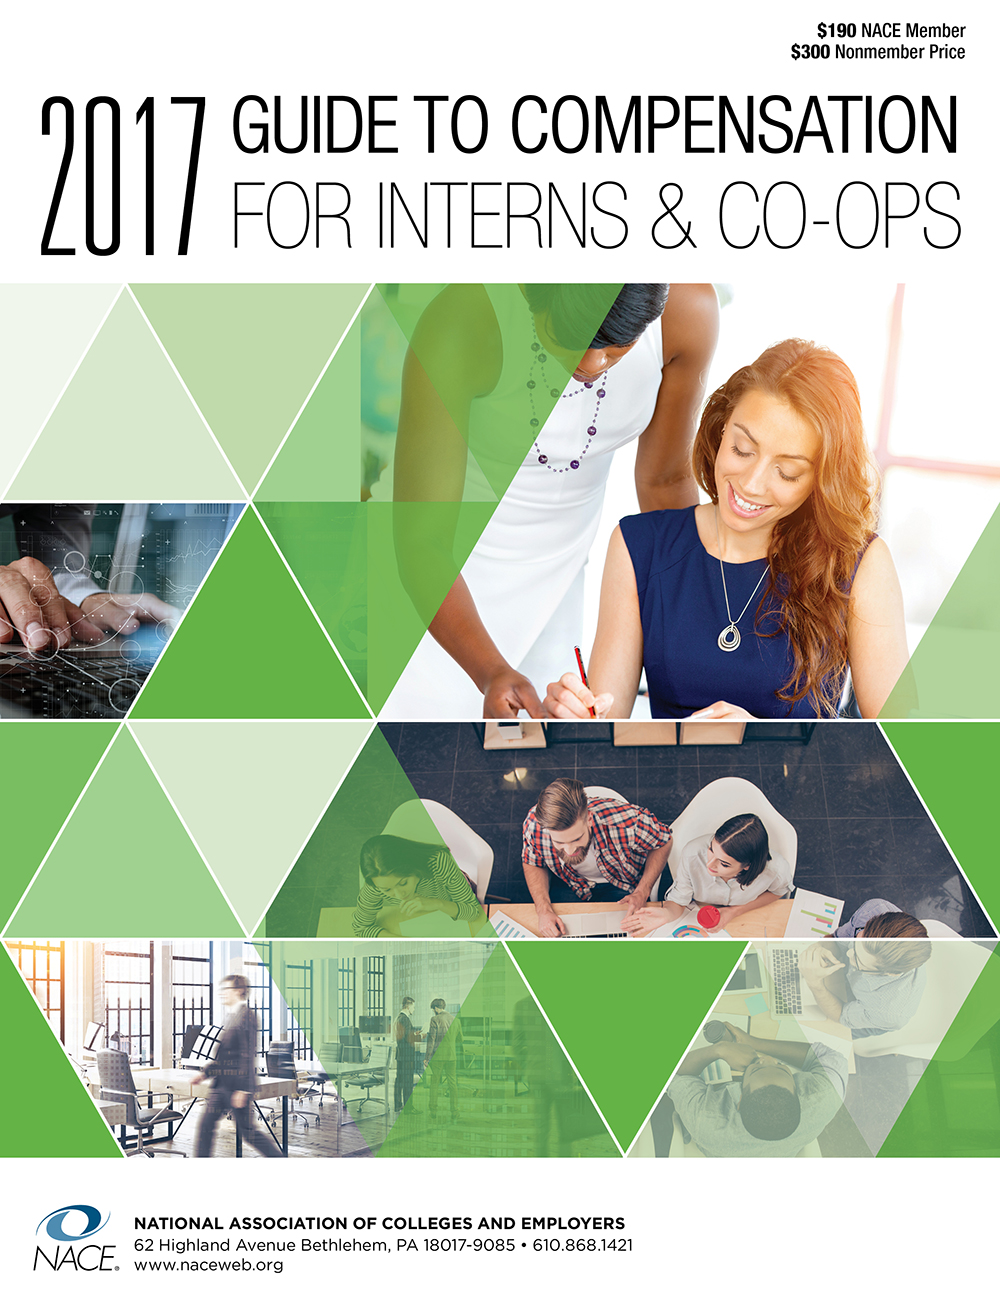 Guide to Compensation for Intern & Co-ops 2017